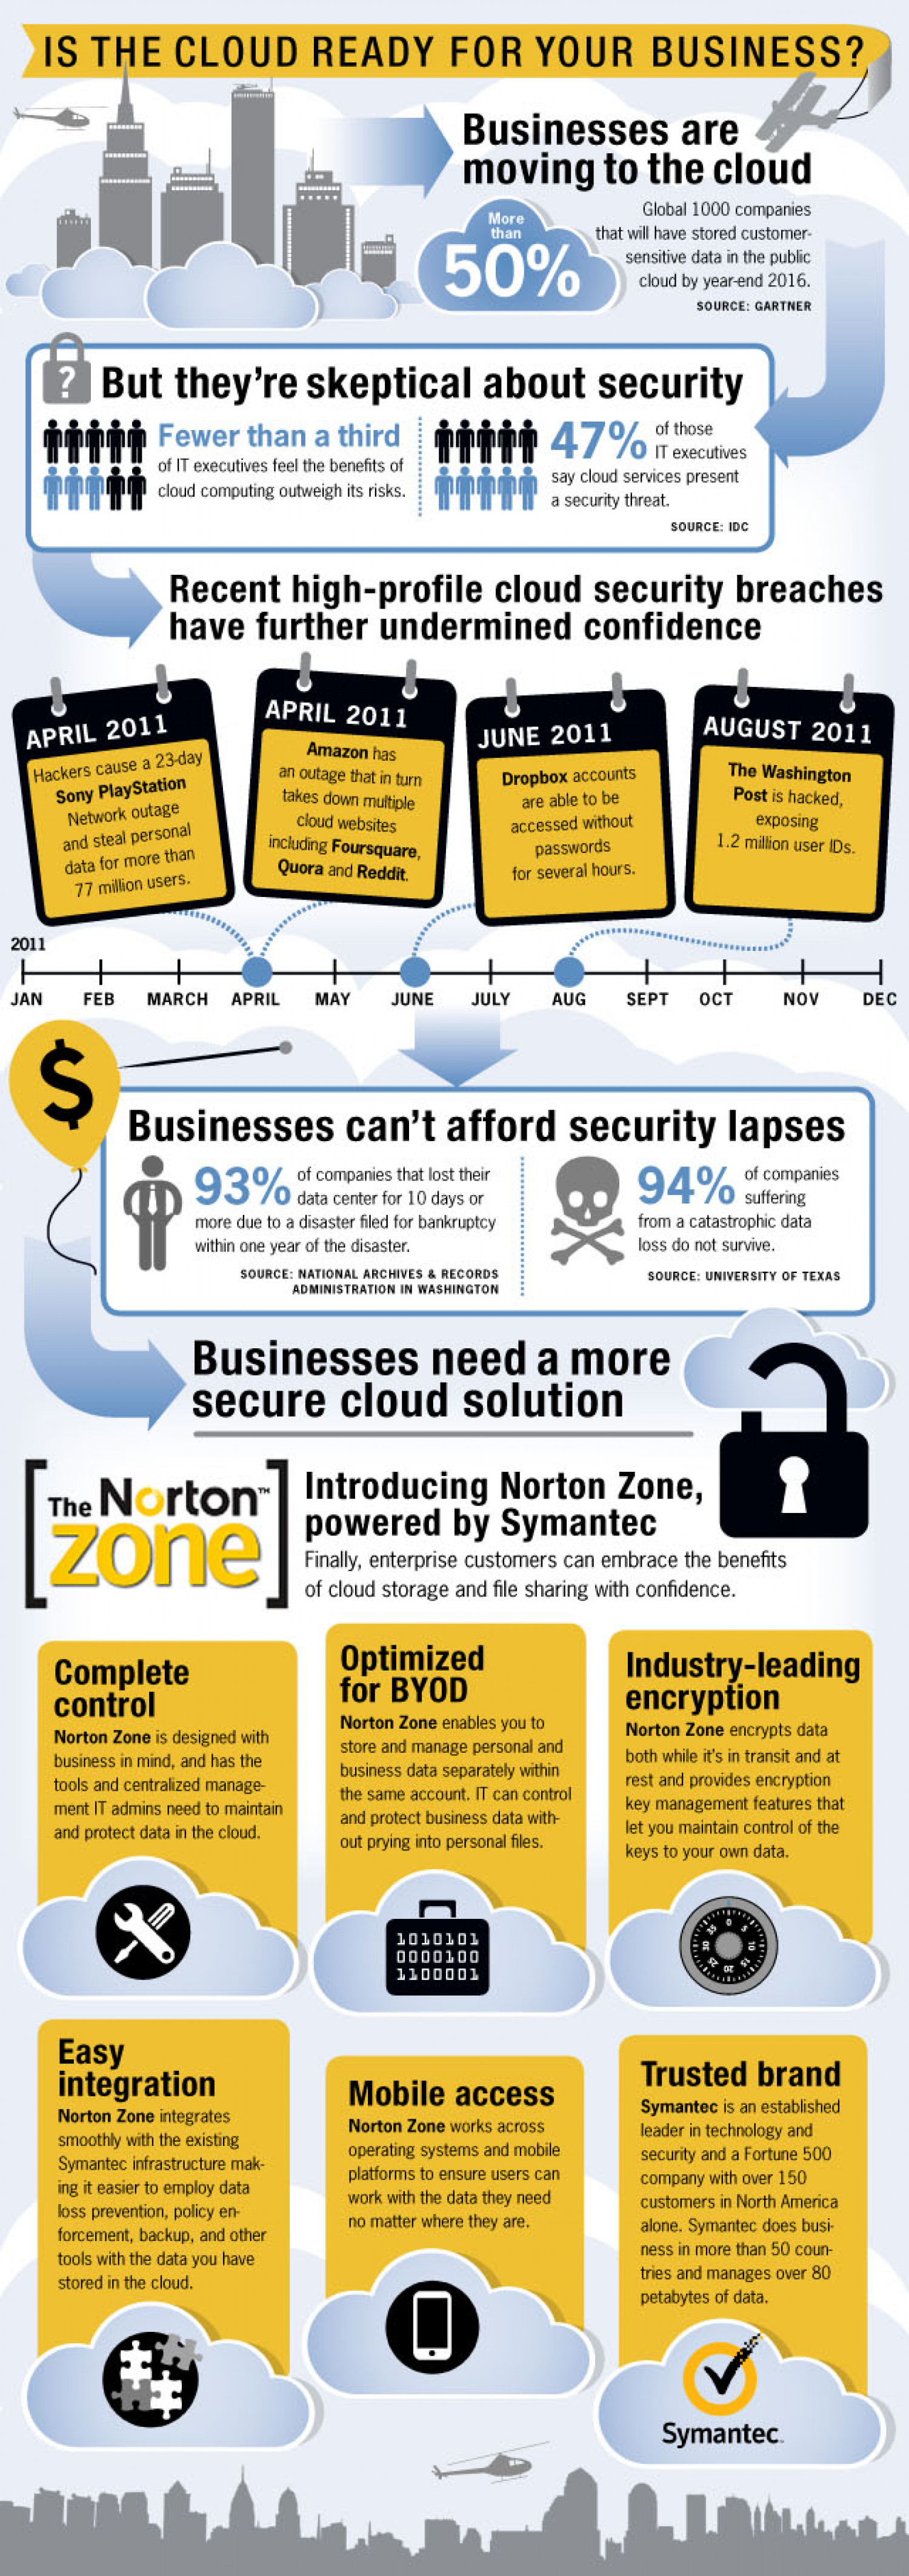 Is the Cloud Ready for Your Business Infographic